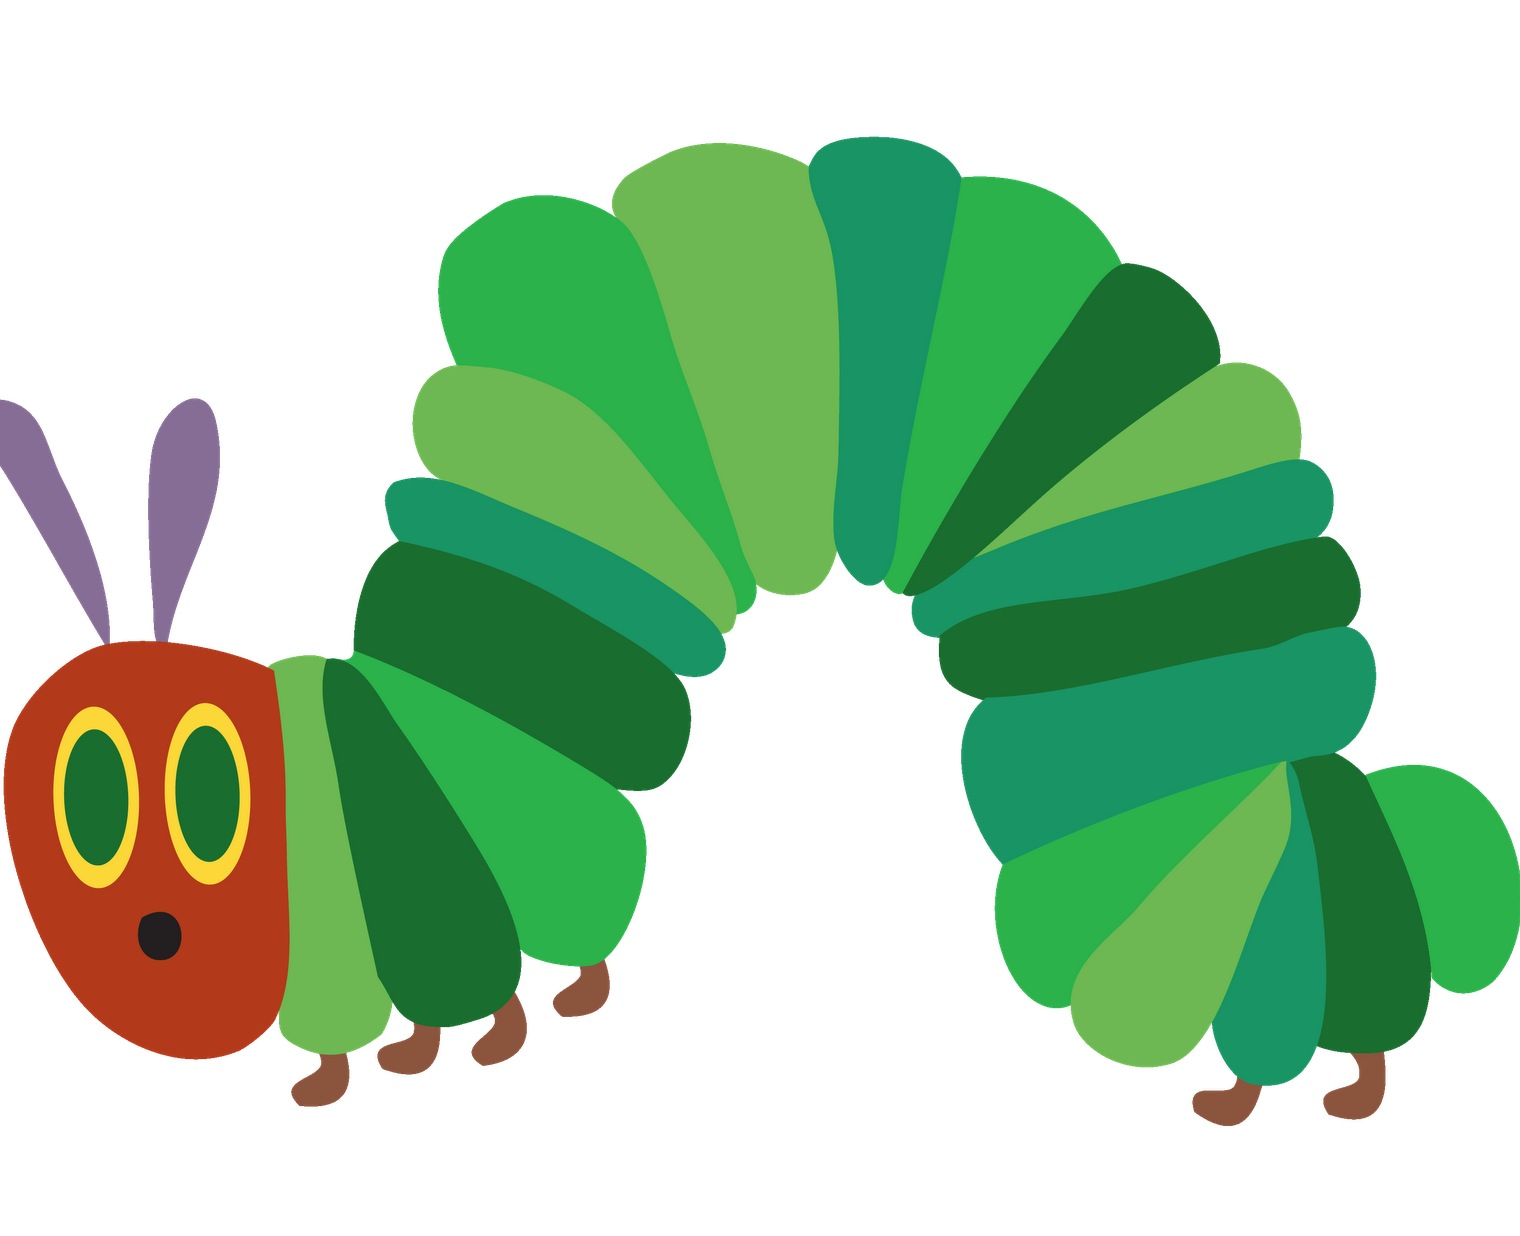 Hungry clipart hungry boy. The very caterpillar text